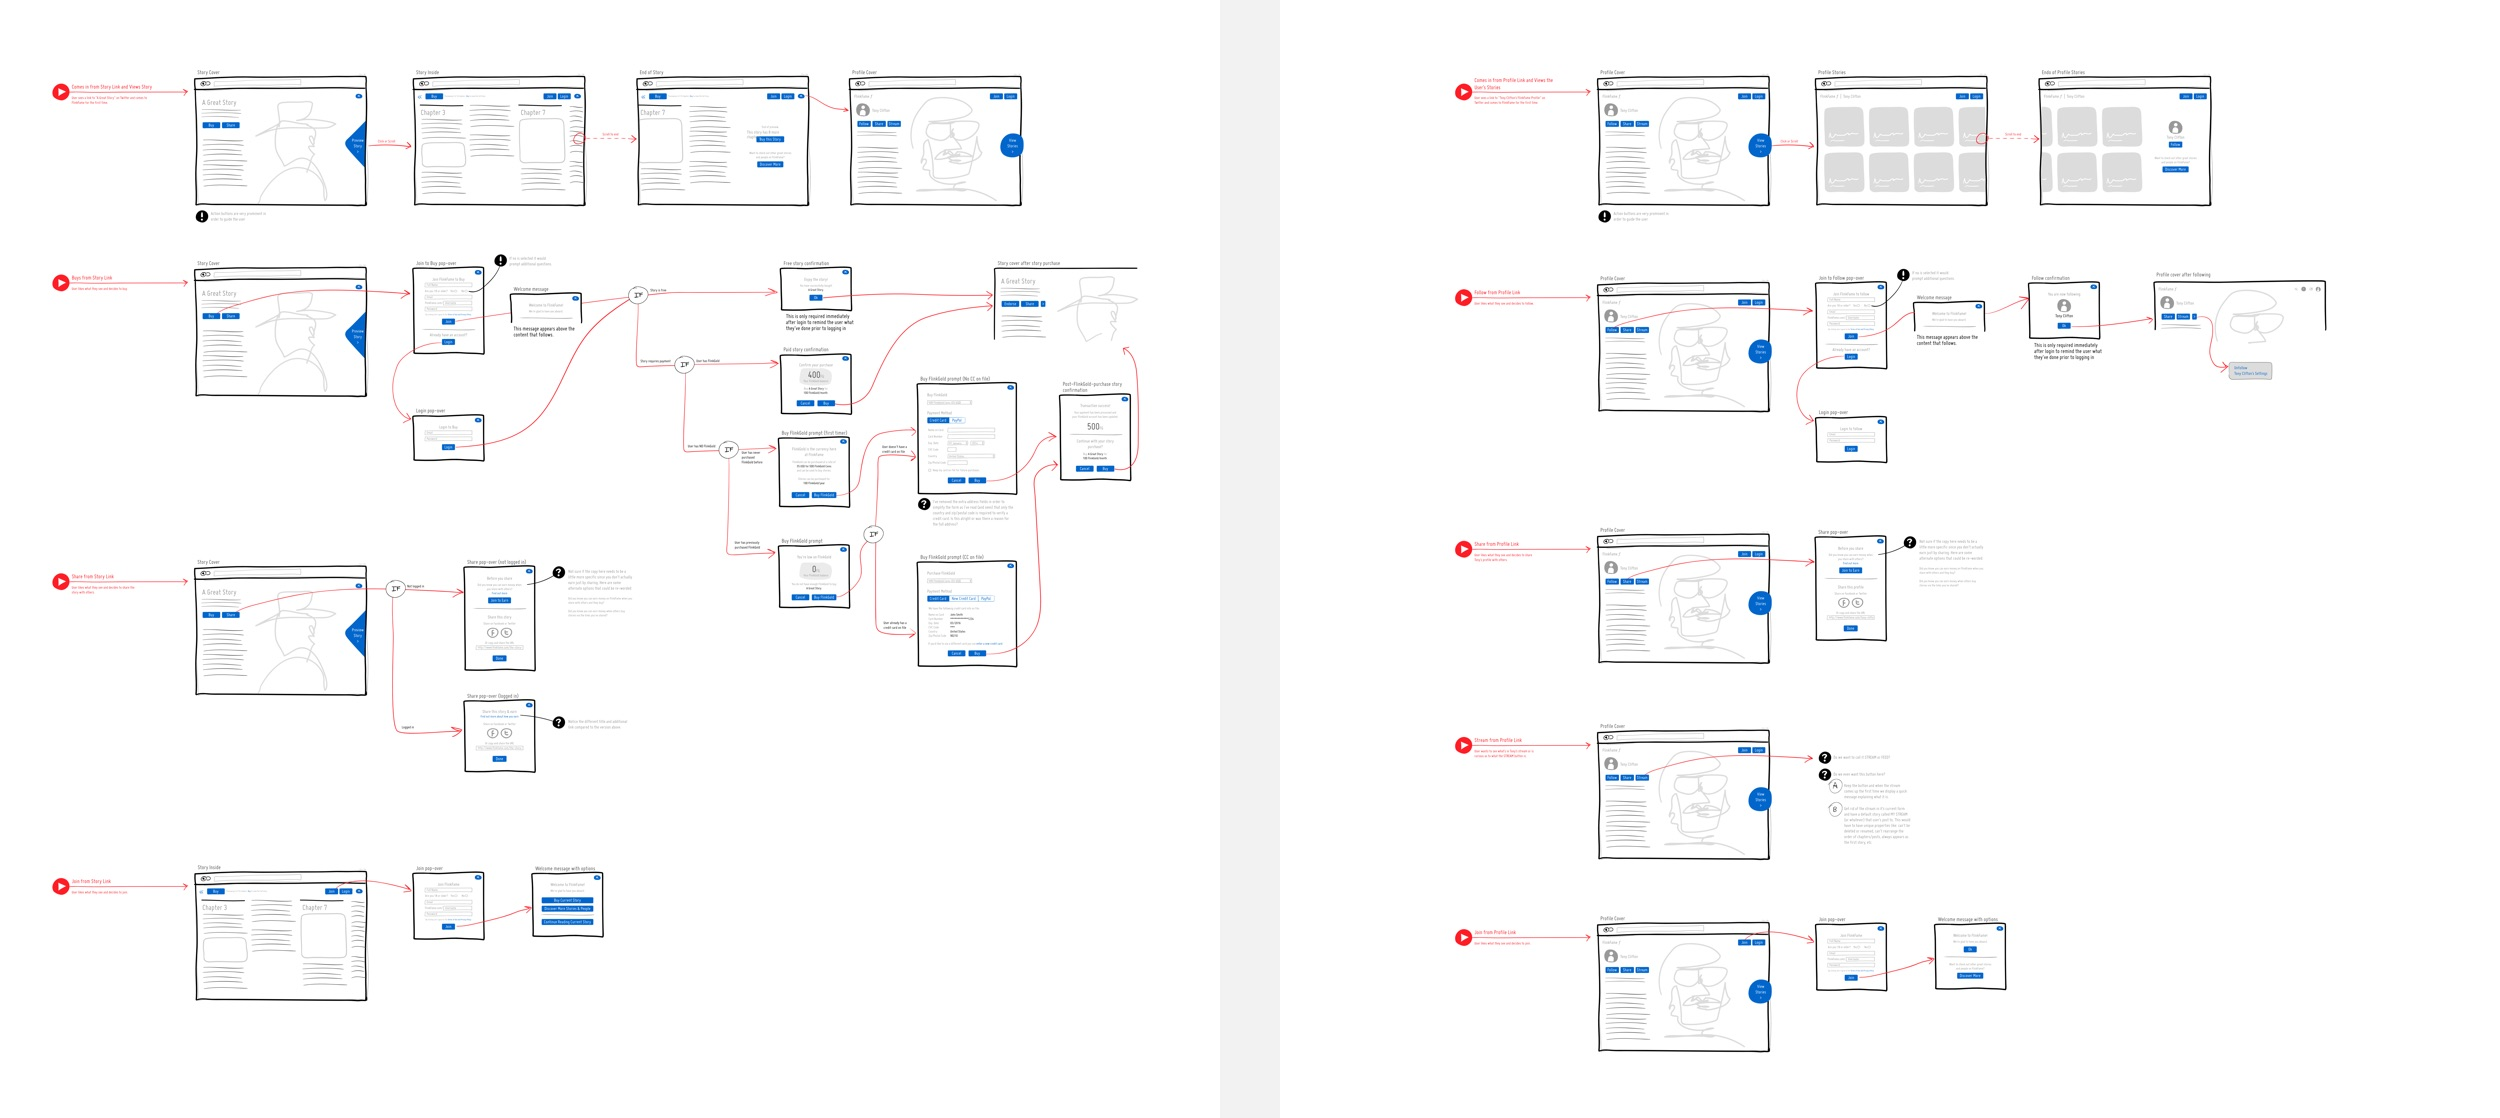 User flows showing detailed interactions.